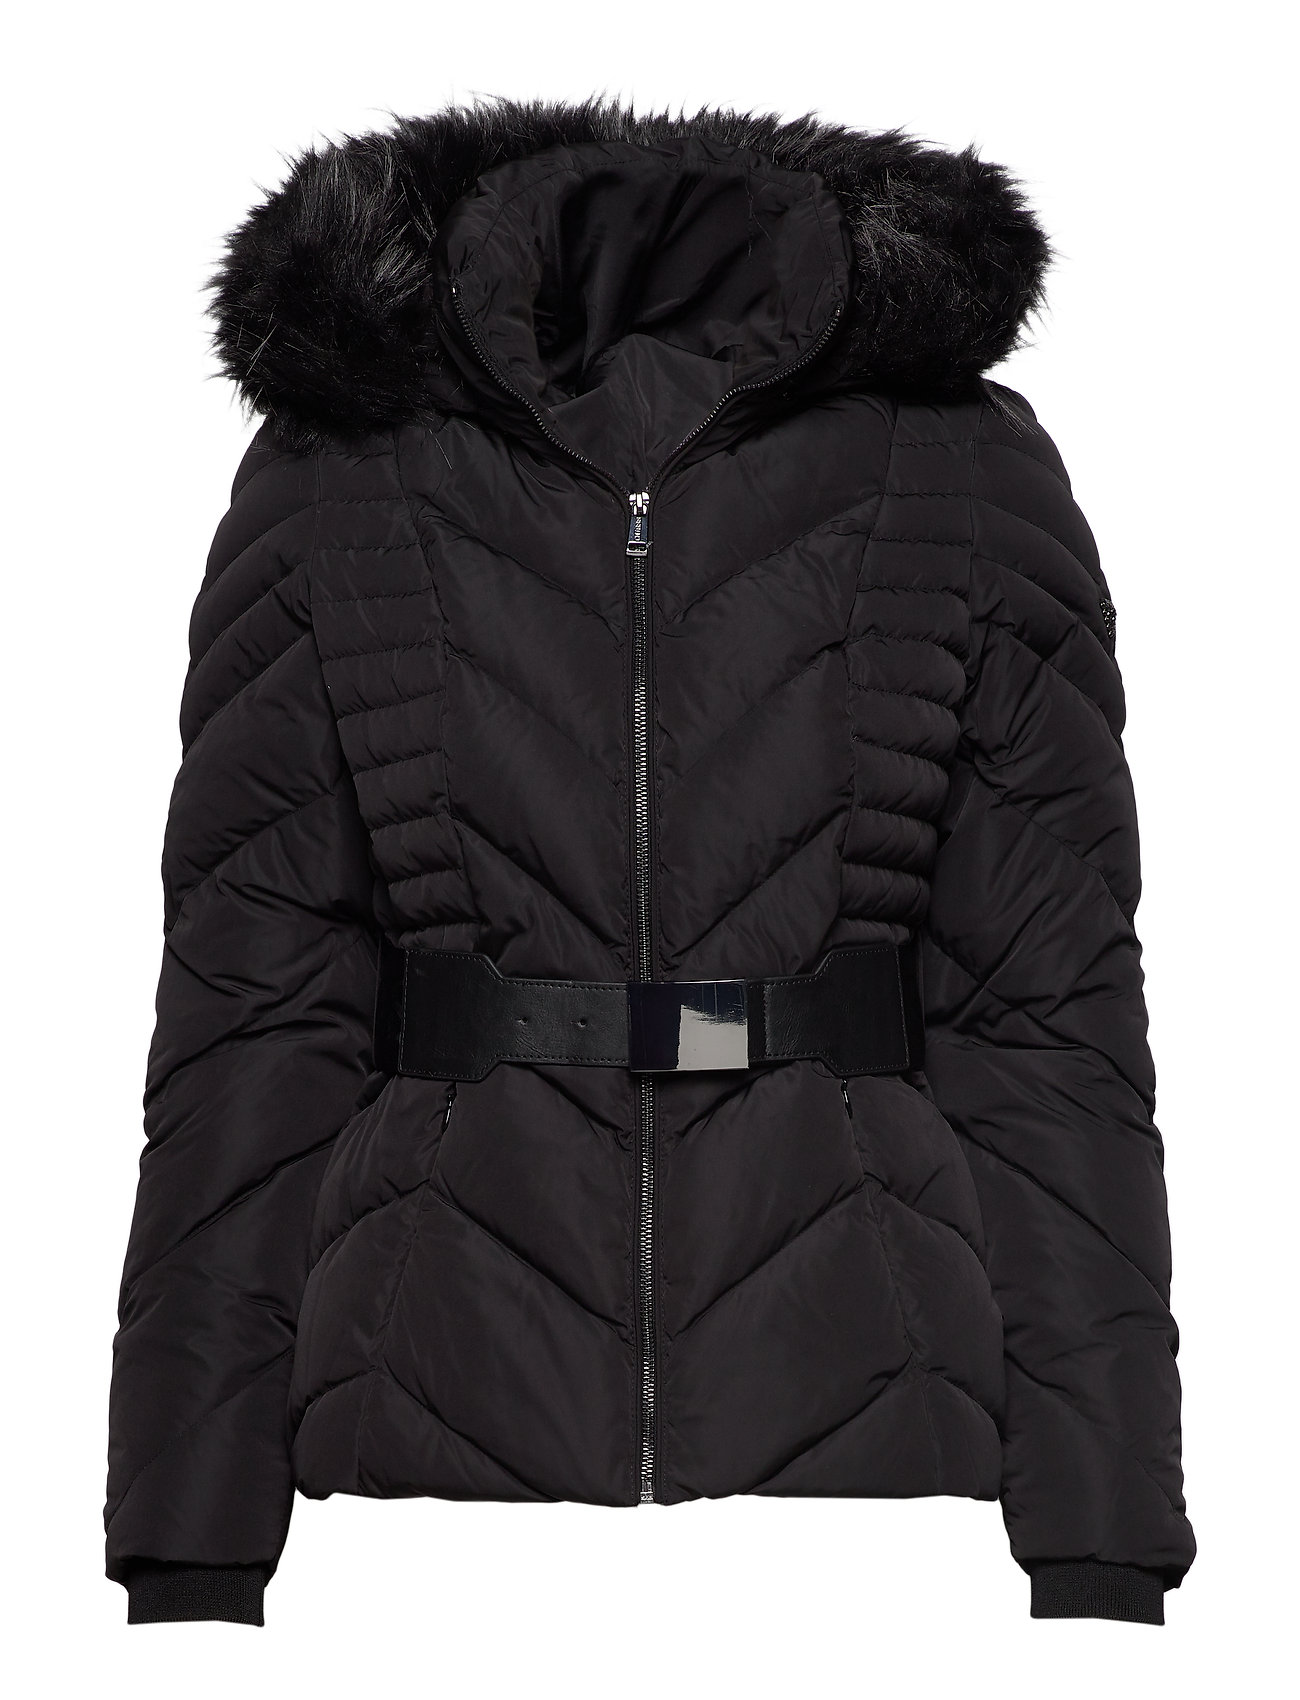 GUESS Jeans PETRA DOWN JACKET - JET BLACK A996